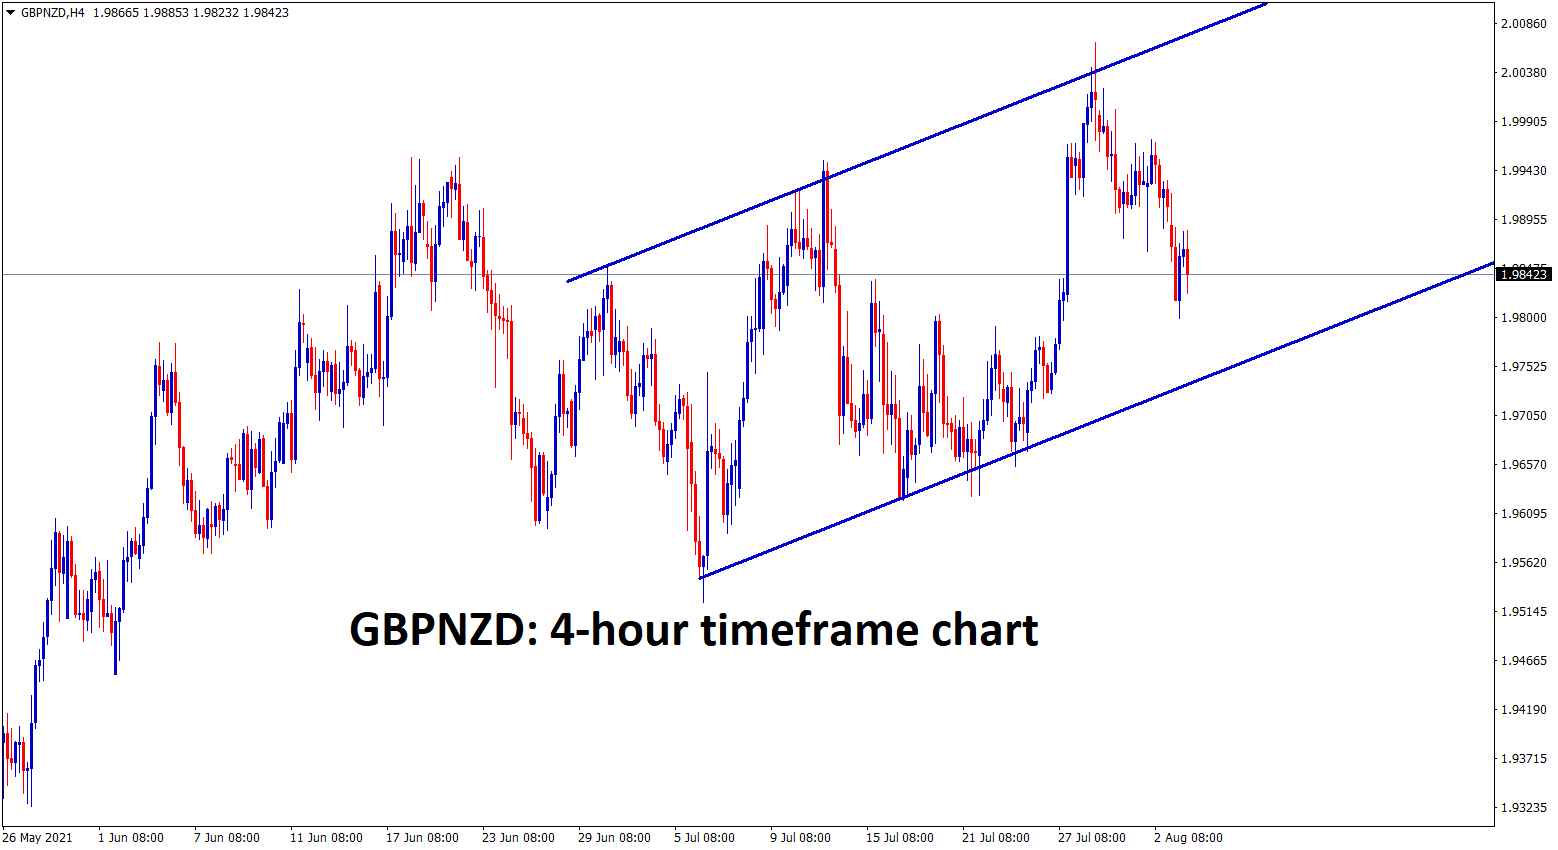 GBPNZD is moving between the ascending channel range